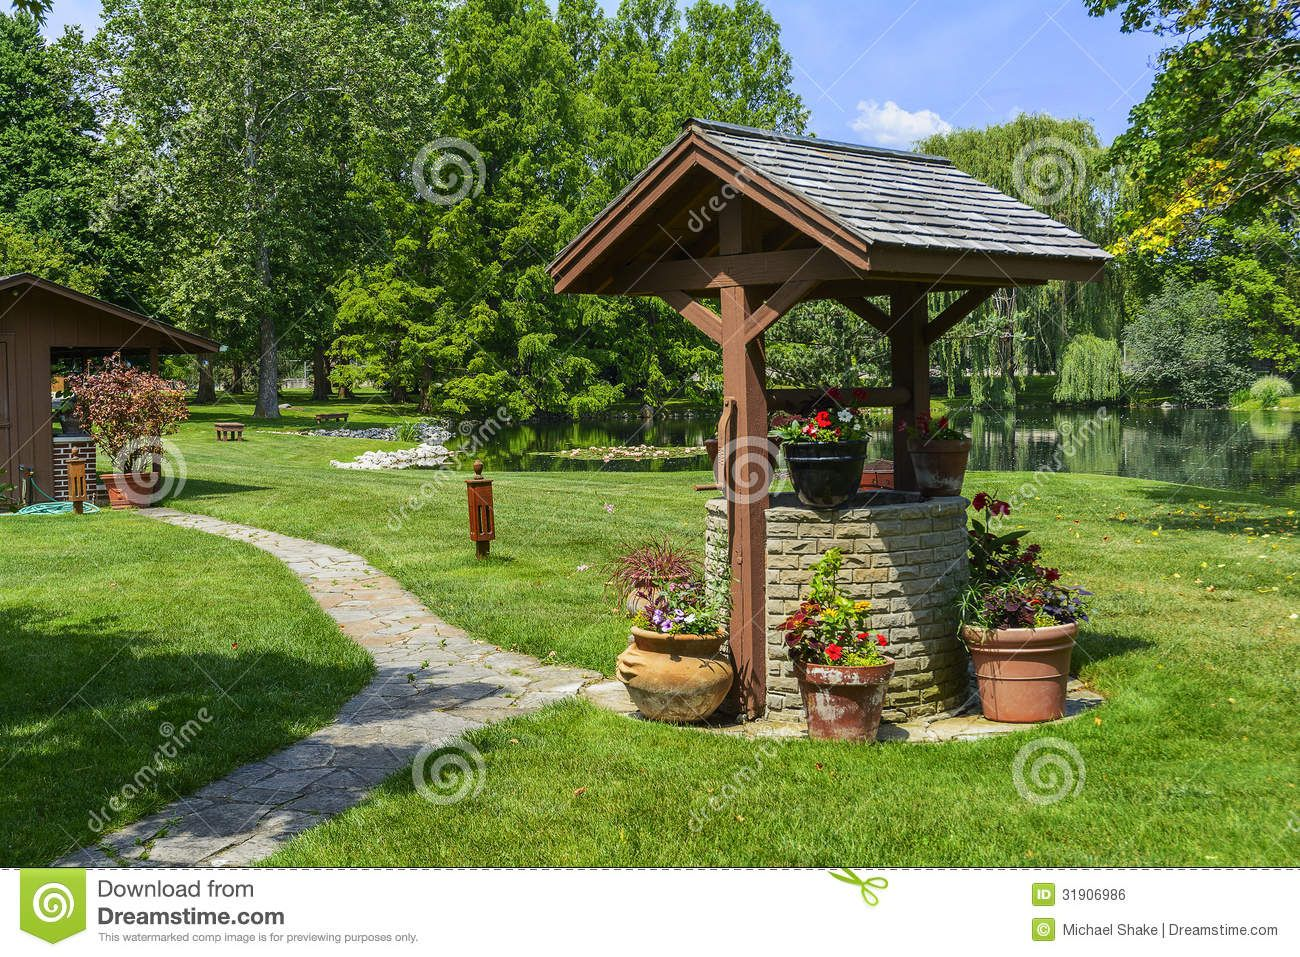 charming landscape wishing wells #6: wishing wells - Yahoo Image Search Results